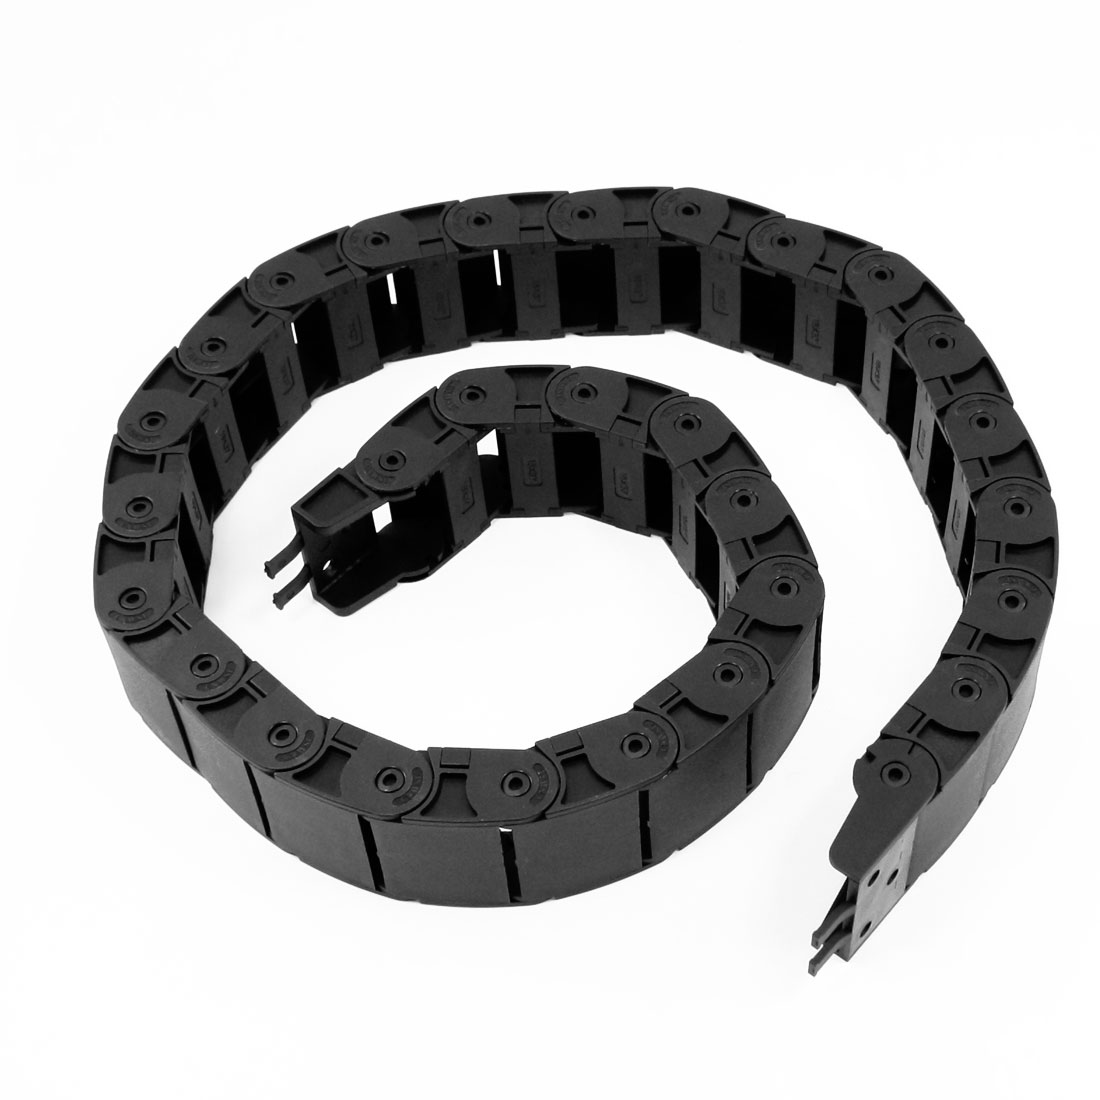 100cm Length Machine Plastic Towline Drag Chain Black 18mm x 37mm